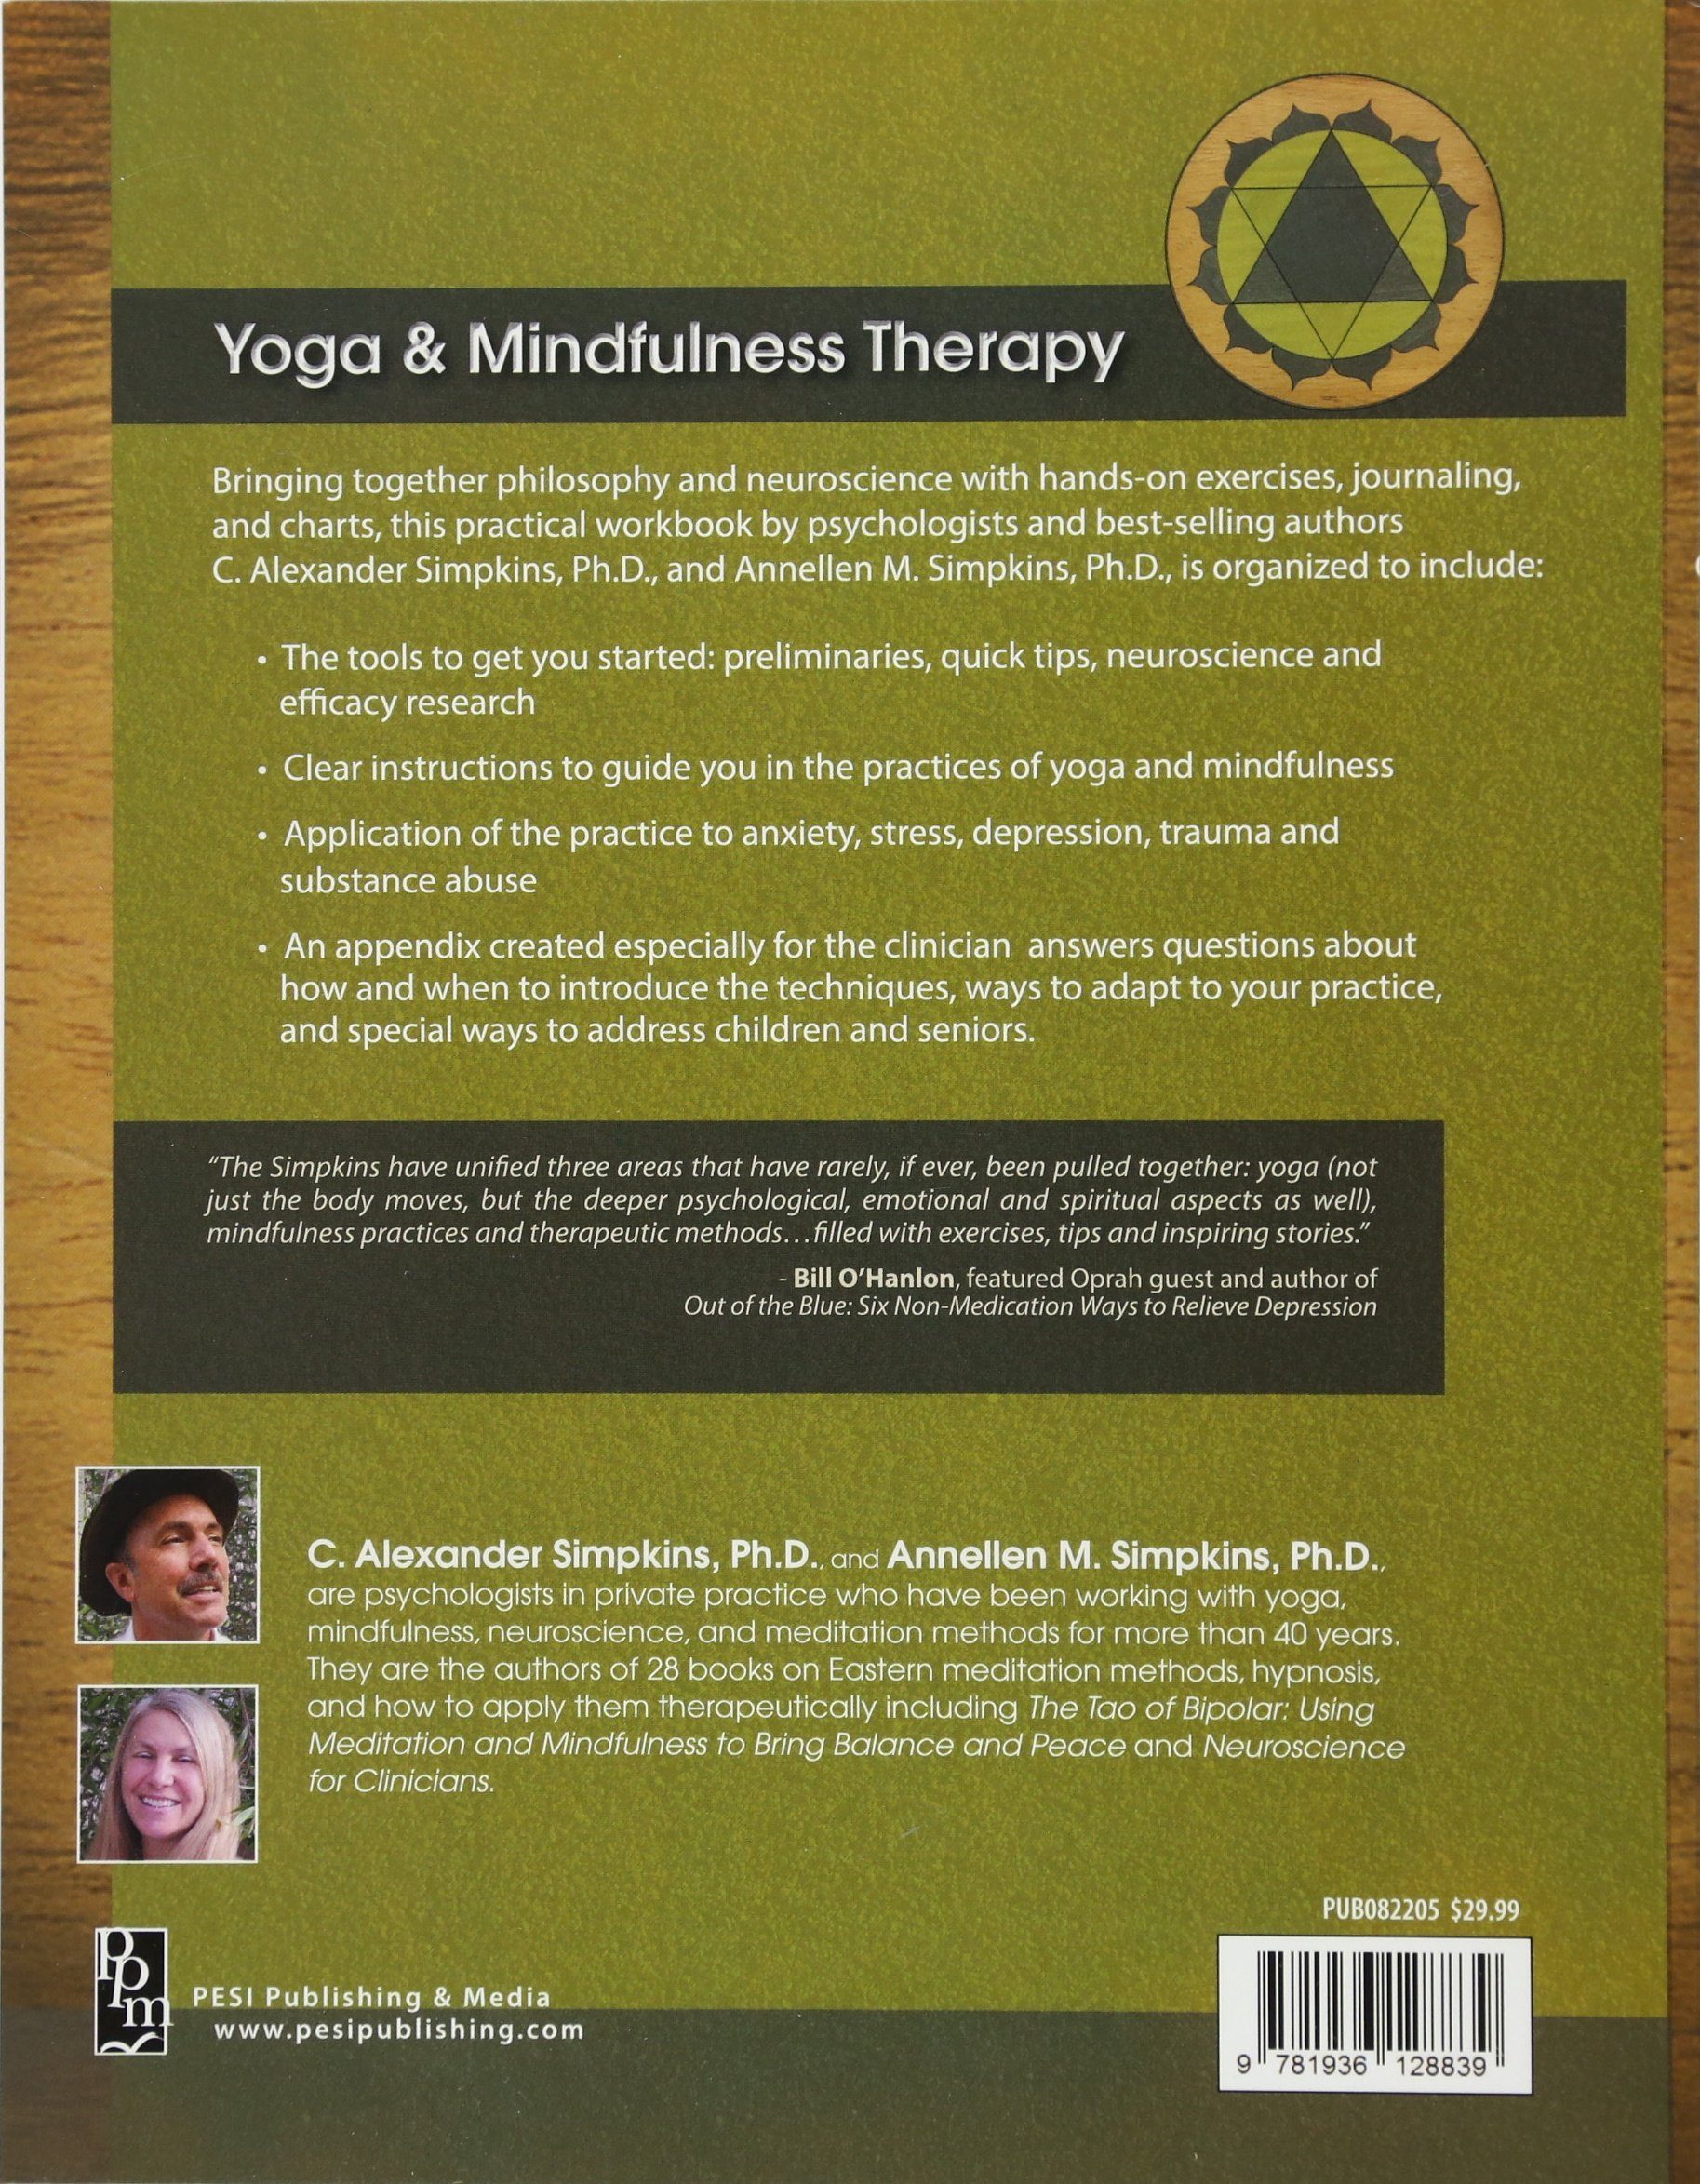 Yoga Mindfulness Therapy Workbook For Clinicians And Clients C Alexander Simpkins PhD Annellen M 9781936128839 Amazon Books